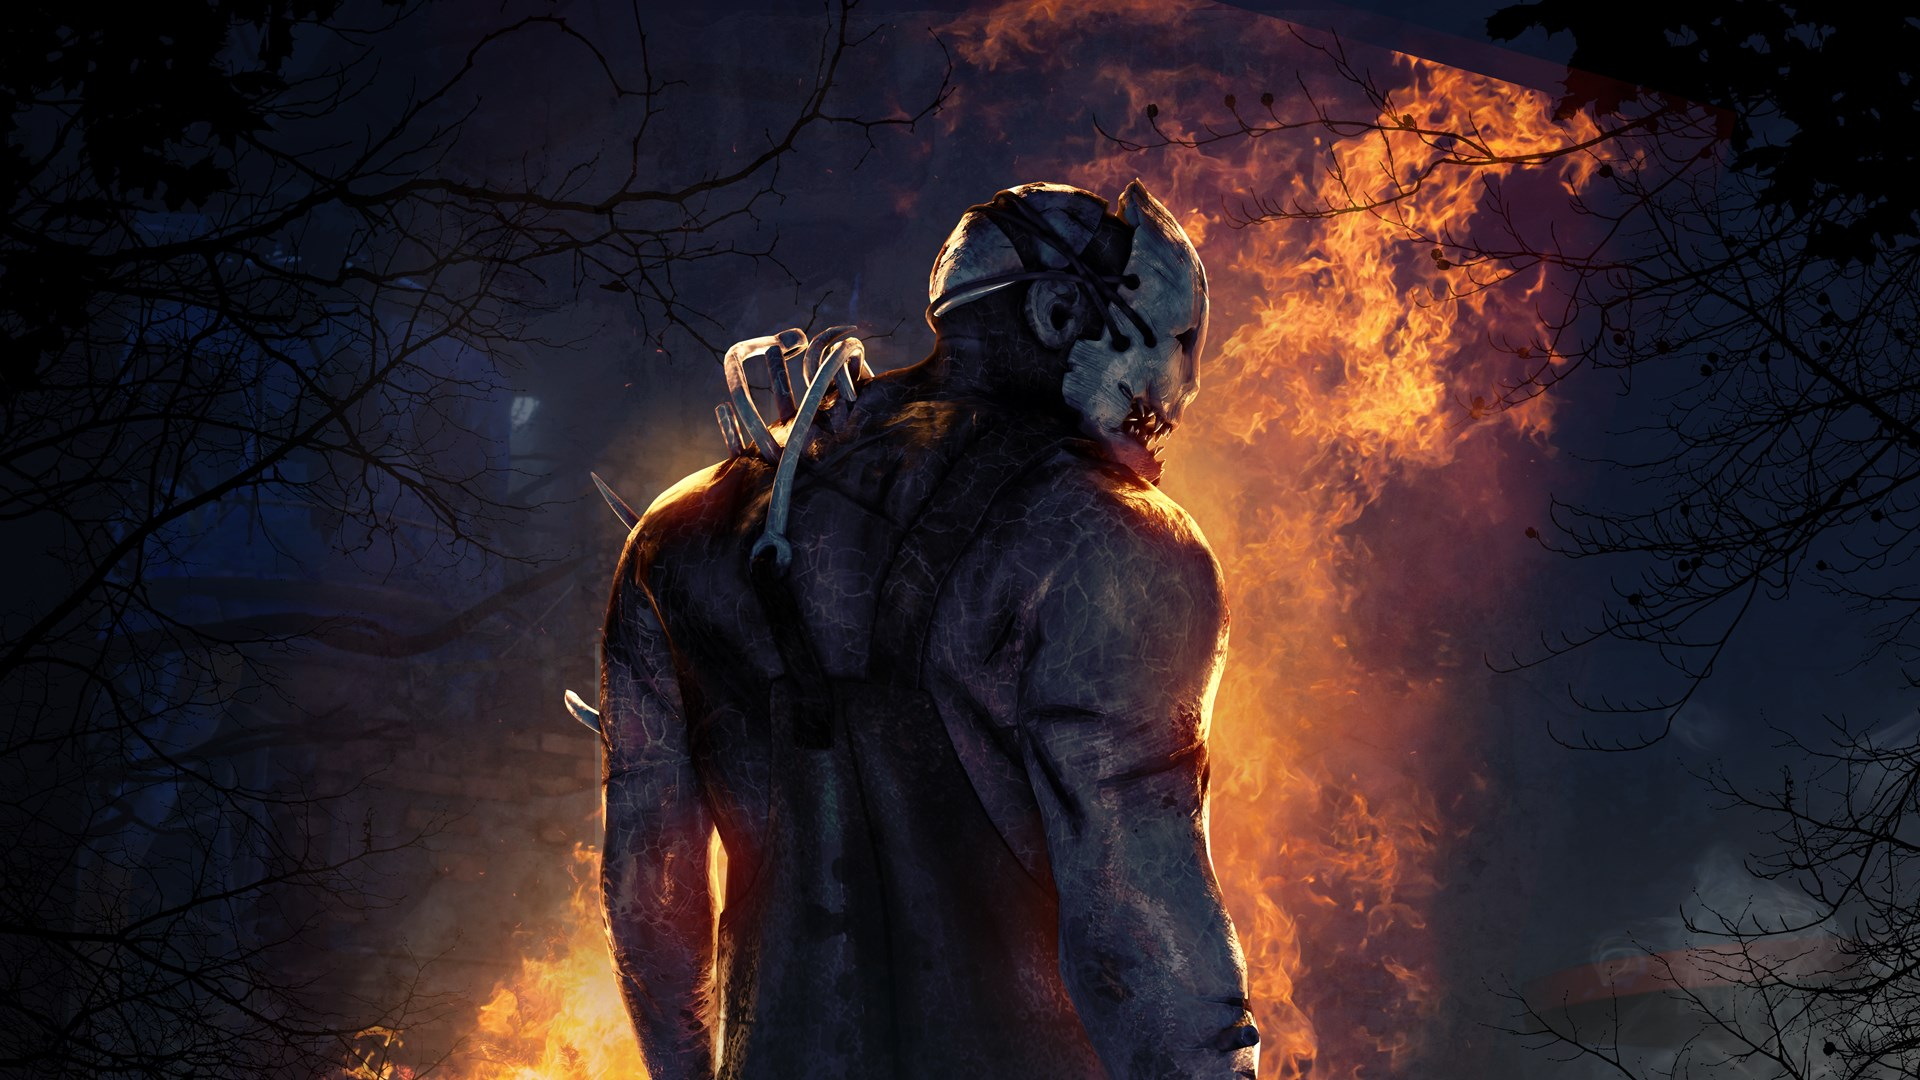 Buy Dead by Daylight: Special Edition - Microsoft Store en-CA